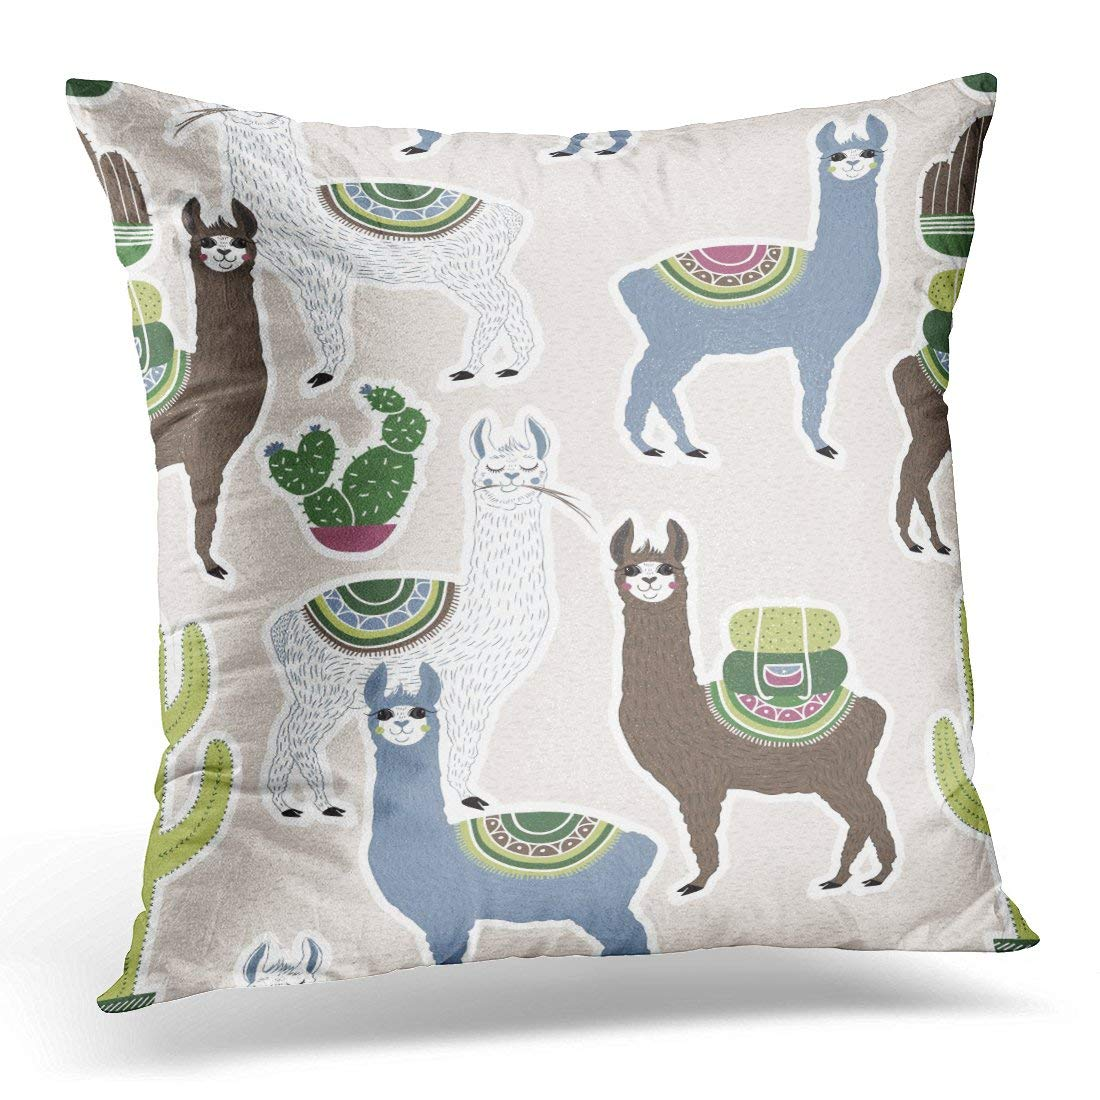 ARHOME Colorful of Sweet Llama Alpaca and Cactus Hand Draw South America's Pattern Kids Goods Cute Beige Pink Pillow Case Cushion Cover 16x16 Inches